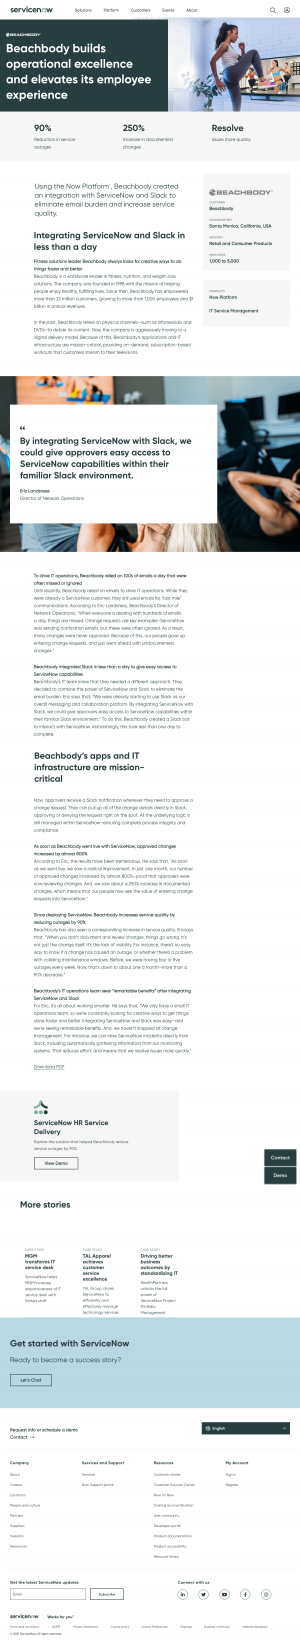 ServiceNow – Customers page